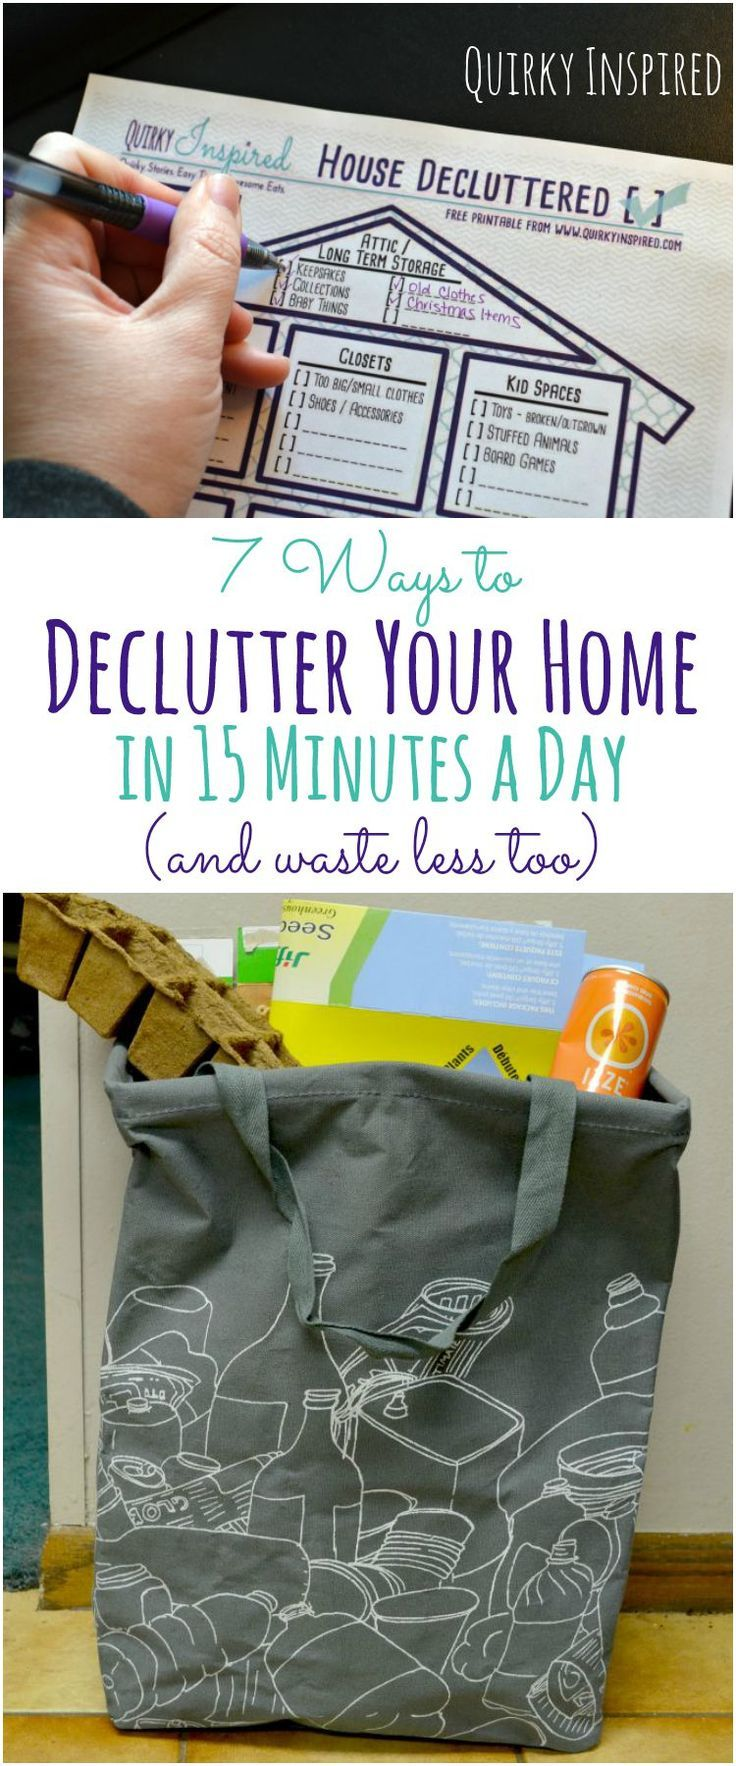 7 Ways to Declutter your home in 15 minutes a day with free printable. As you declutter, donate your gently used items to Goodwill! www.goodwillvalleys.com/donate/